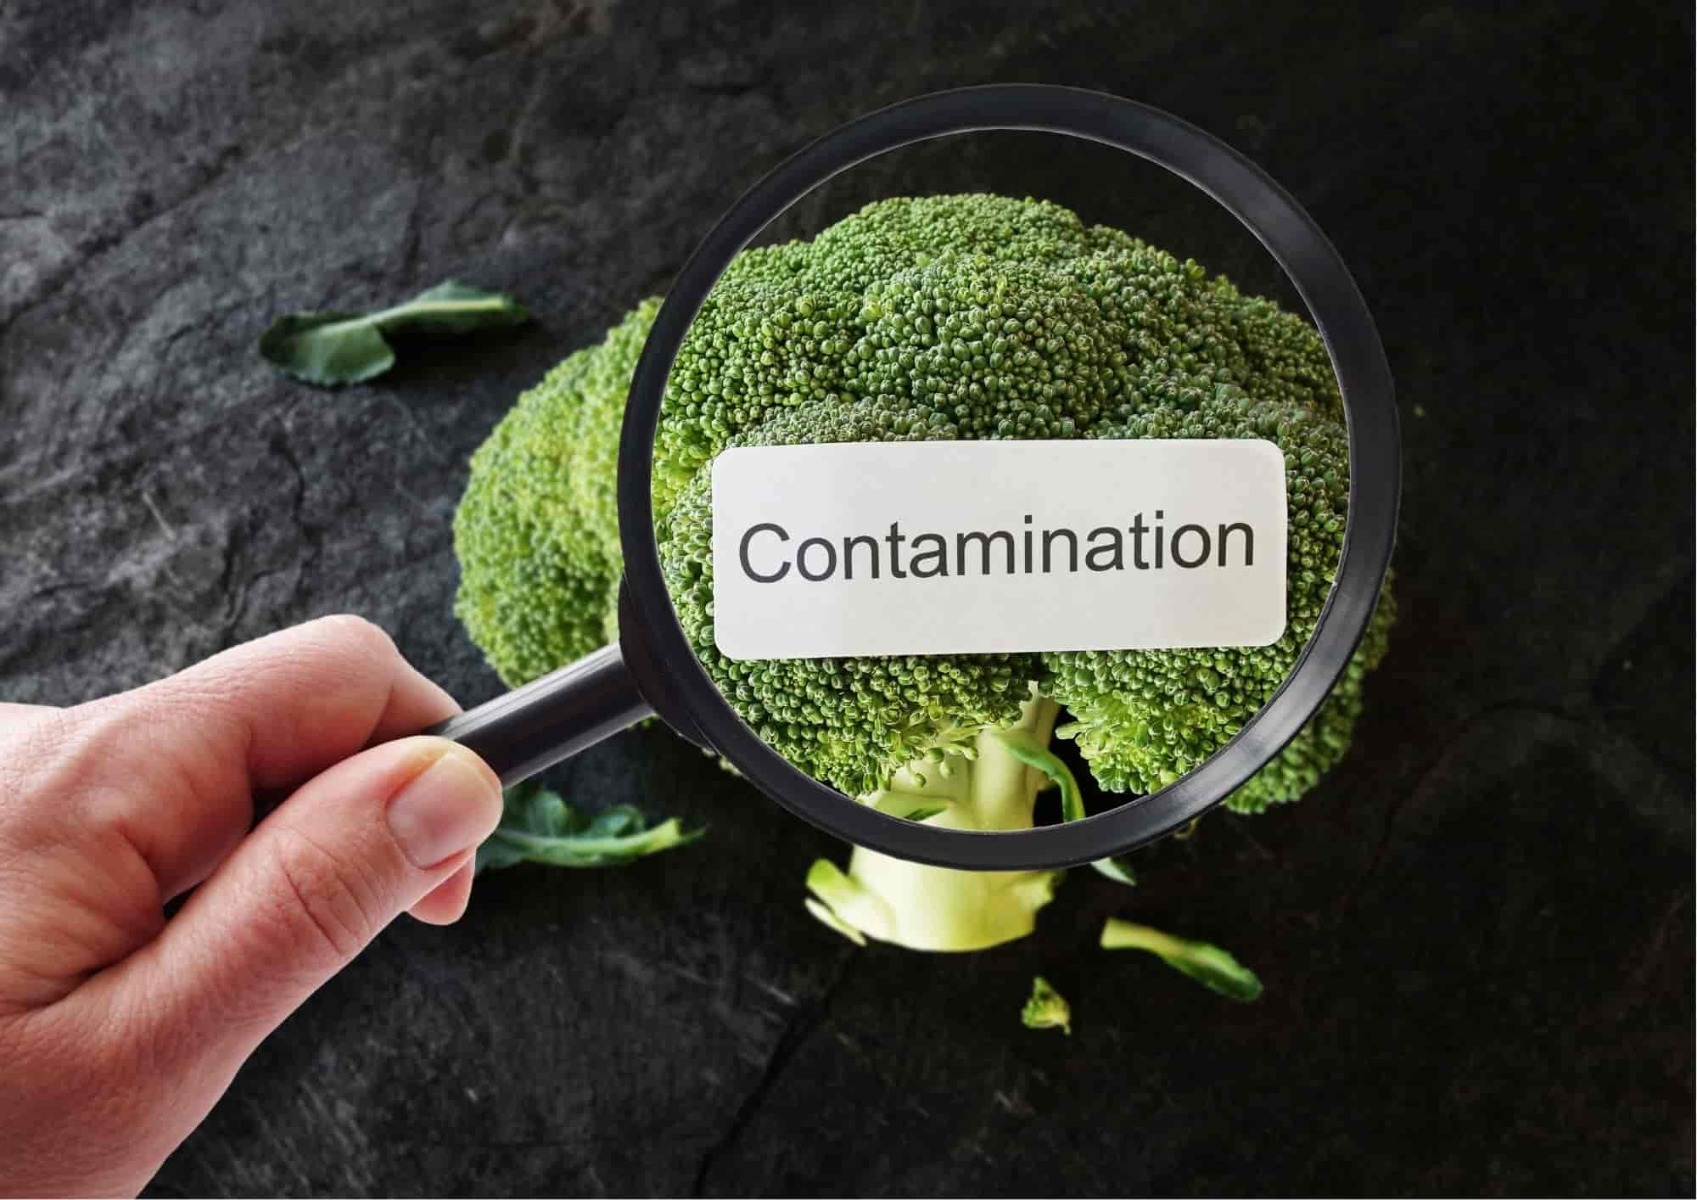 Food contamination and coronavirus_bettercaremarket